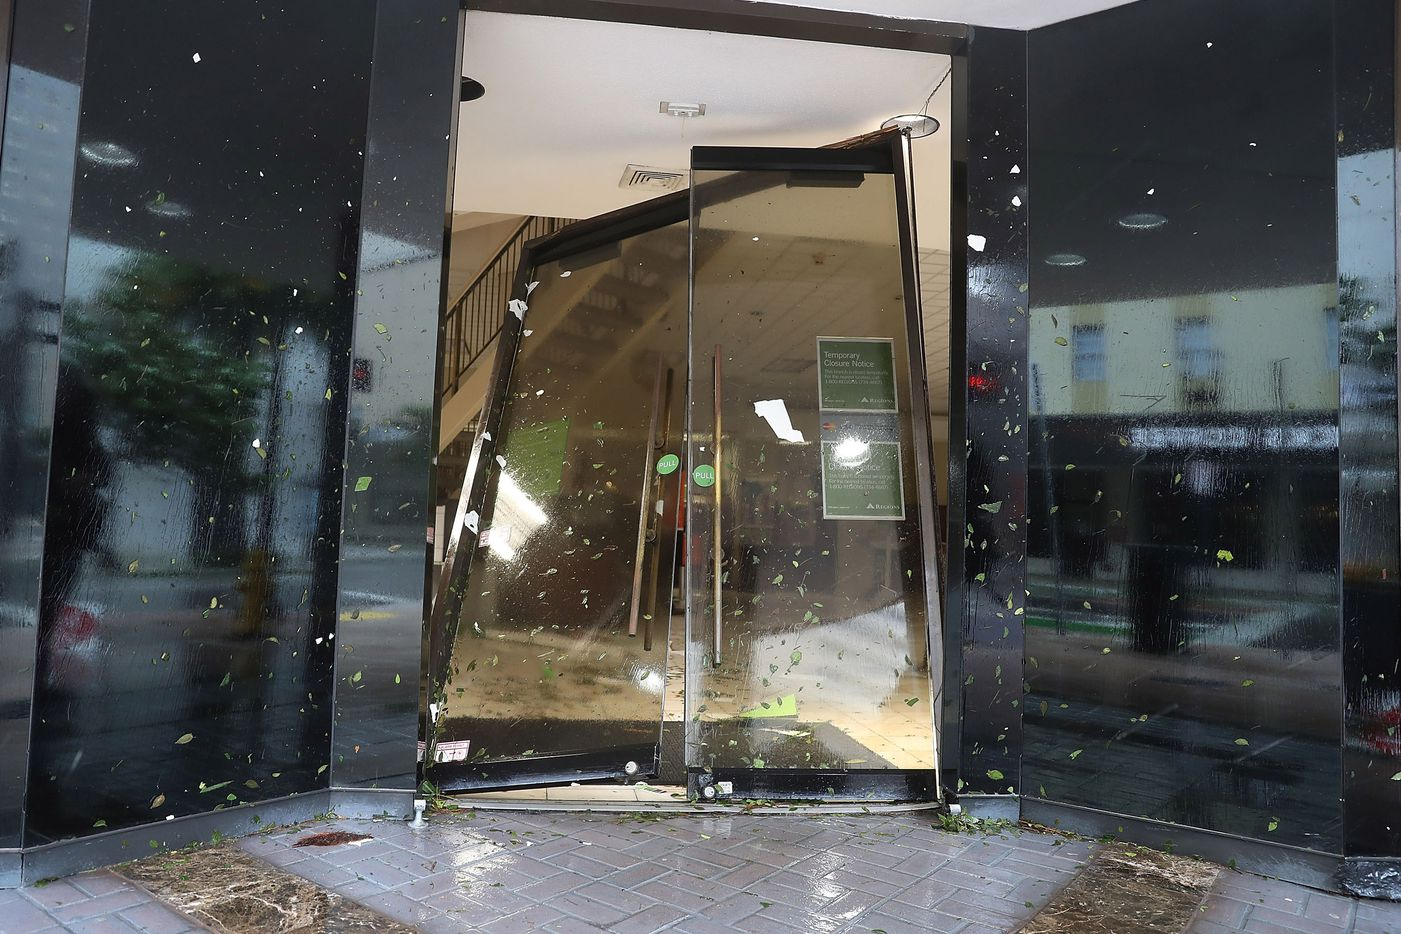 A door is seen blown in at a Regions Bank as Hurricane Irma passes through on September 10, 2017 in Miami, Florida. Hurricane Irma made landfall in the Florida Keys as a Category 4 storm on Sunday, lashing the state with 130 mph winds as it moves up the coast.